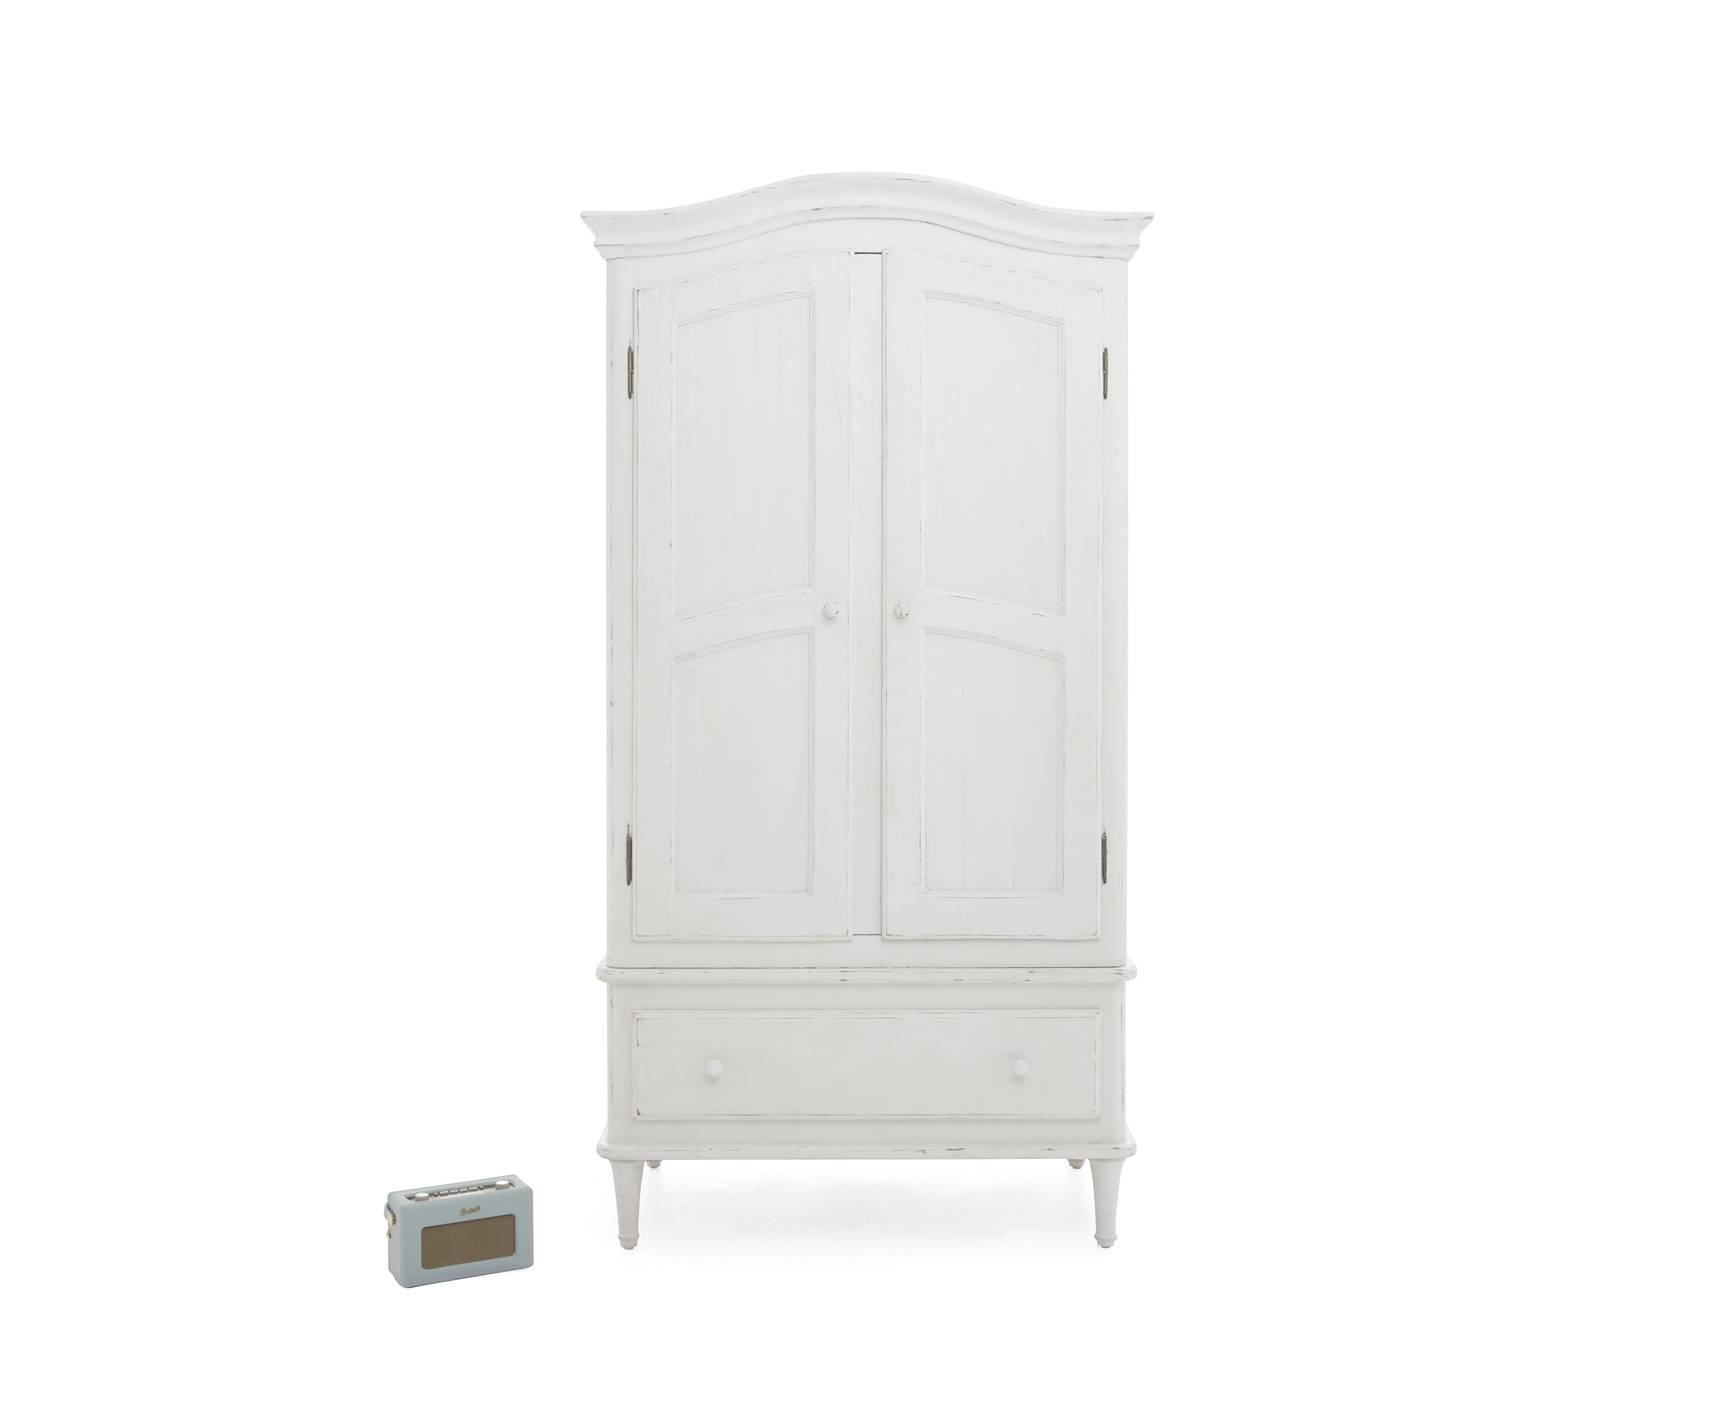 Timbers Wardrobe   White Painted Wardrobe   Loaf Within White Vintage Wardrobes (View 4 of 15)